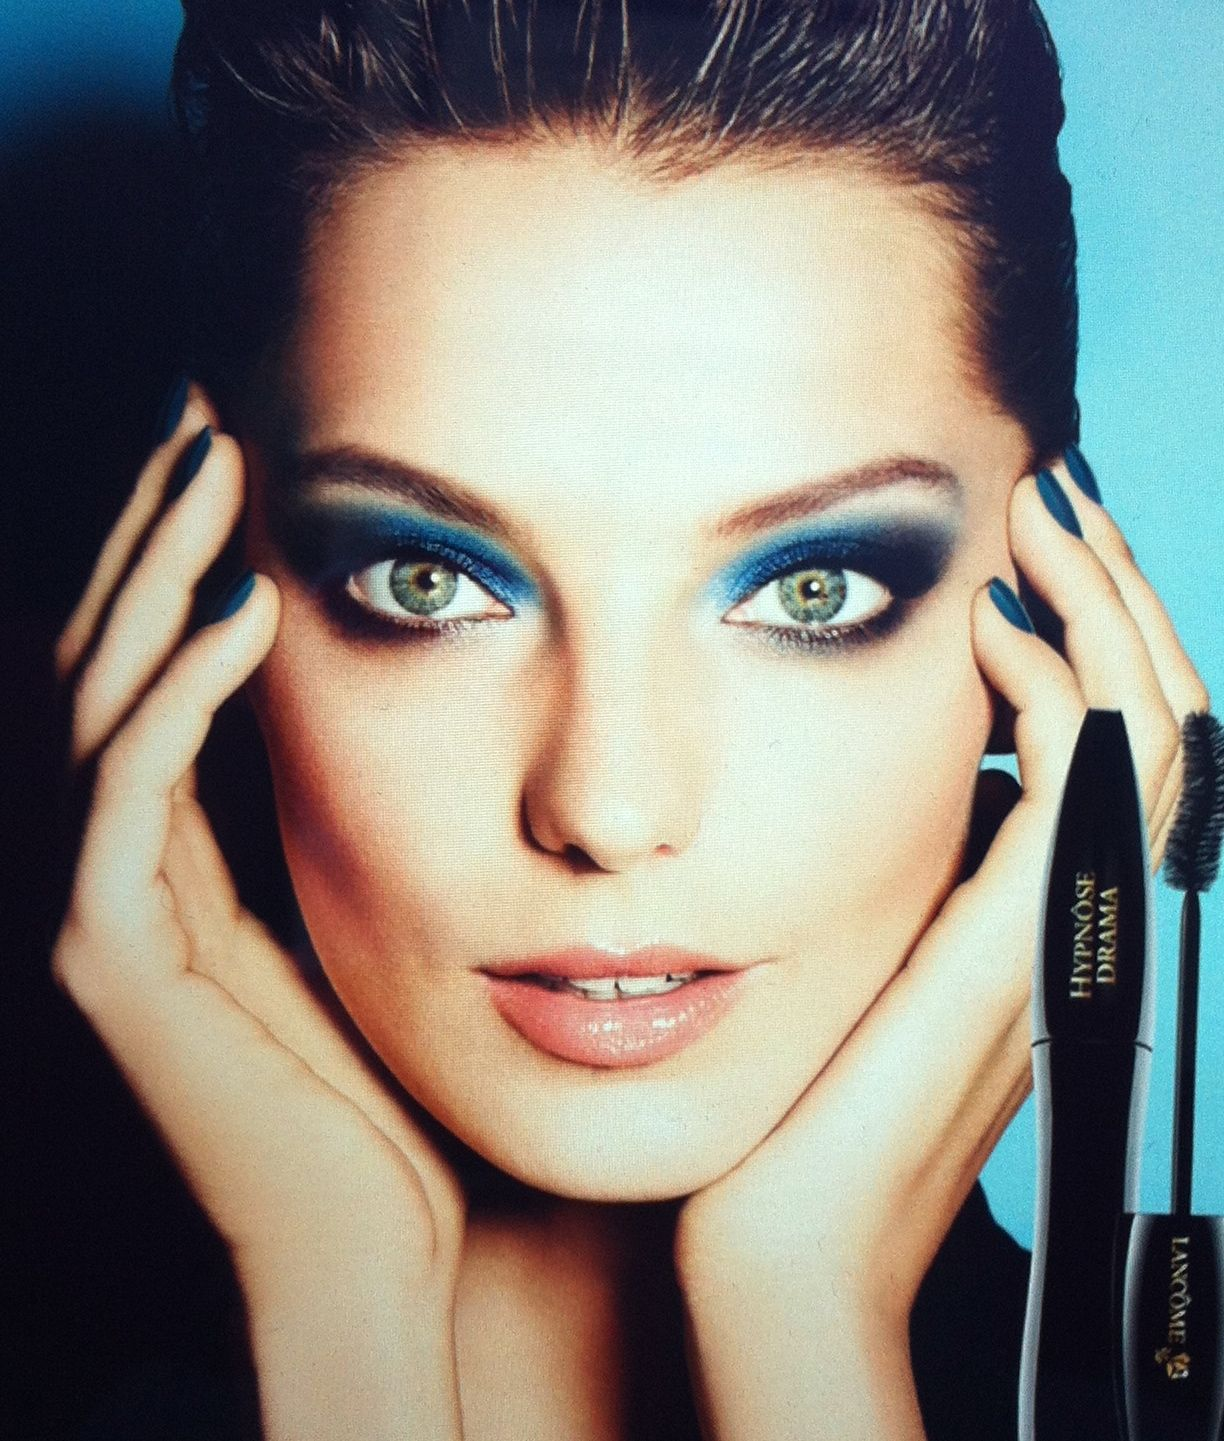 Daria Werbowy Lancome: Black And Blue (With Images)